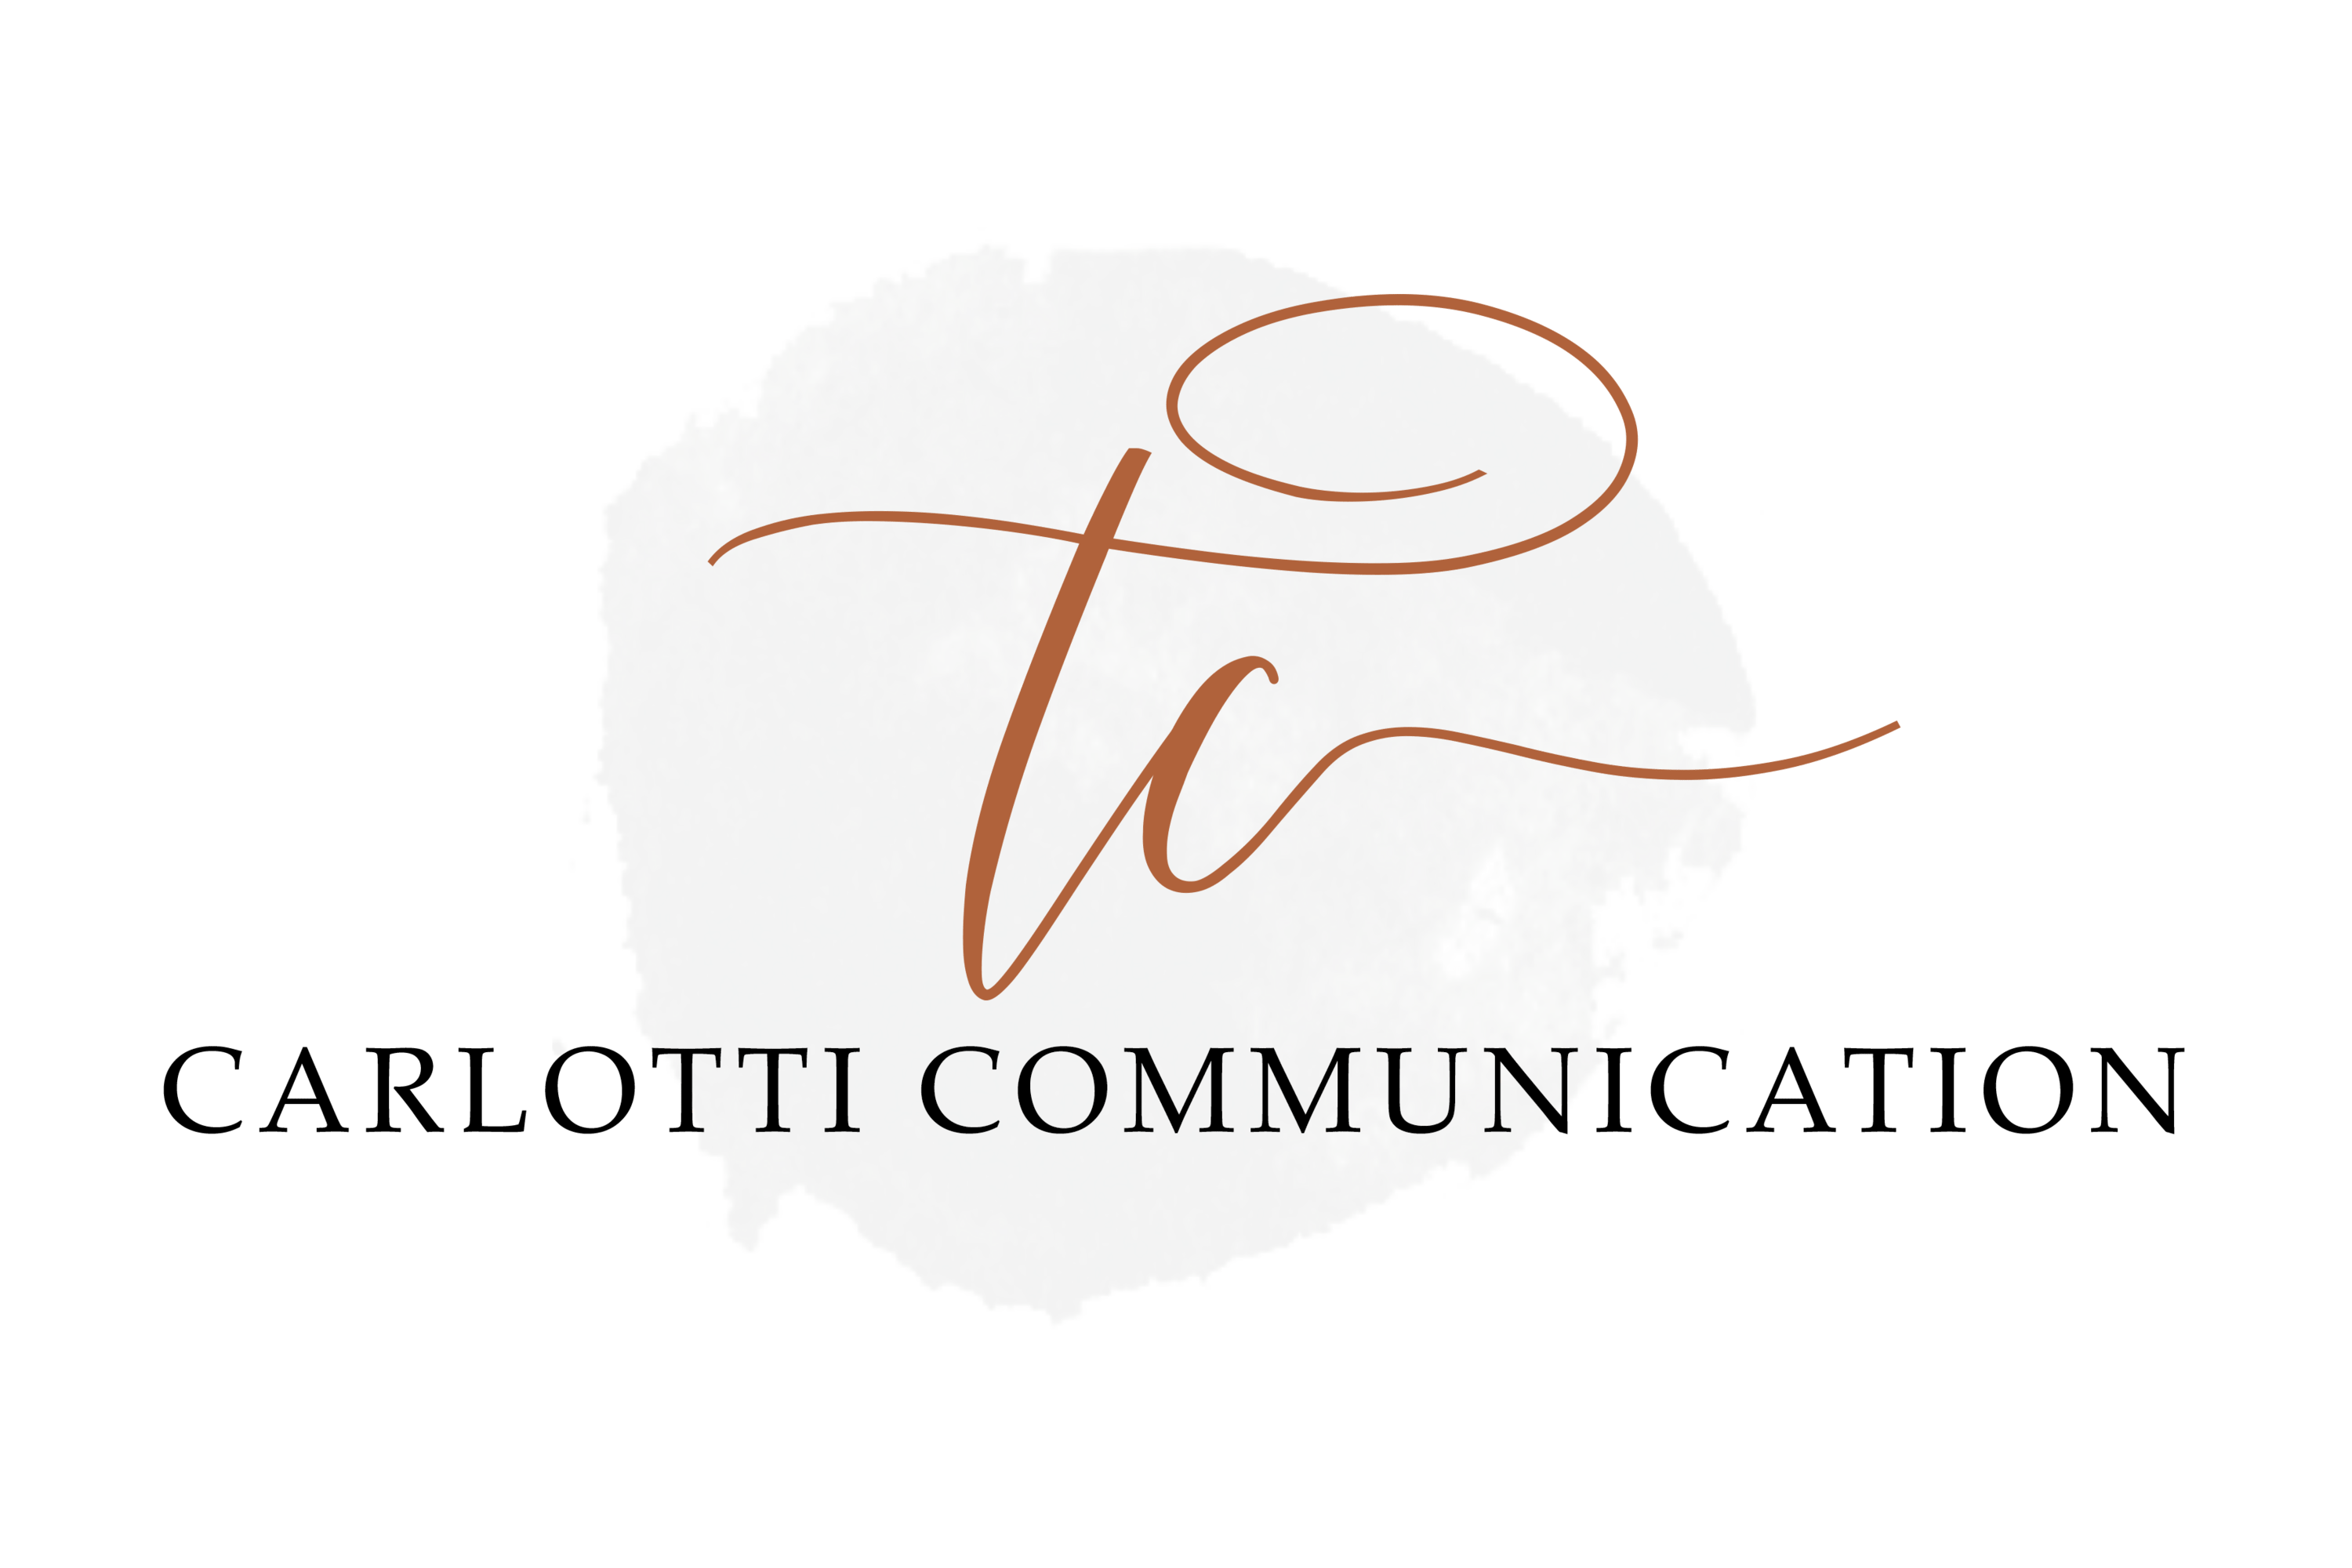 Carlotti Communication